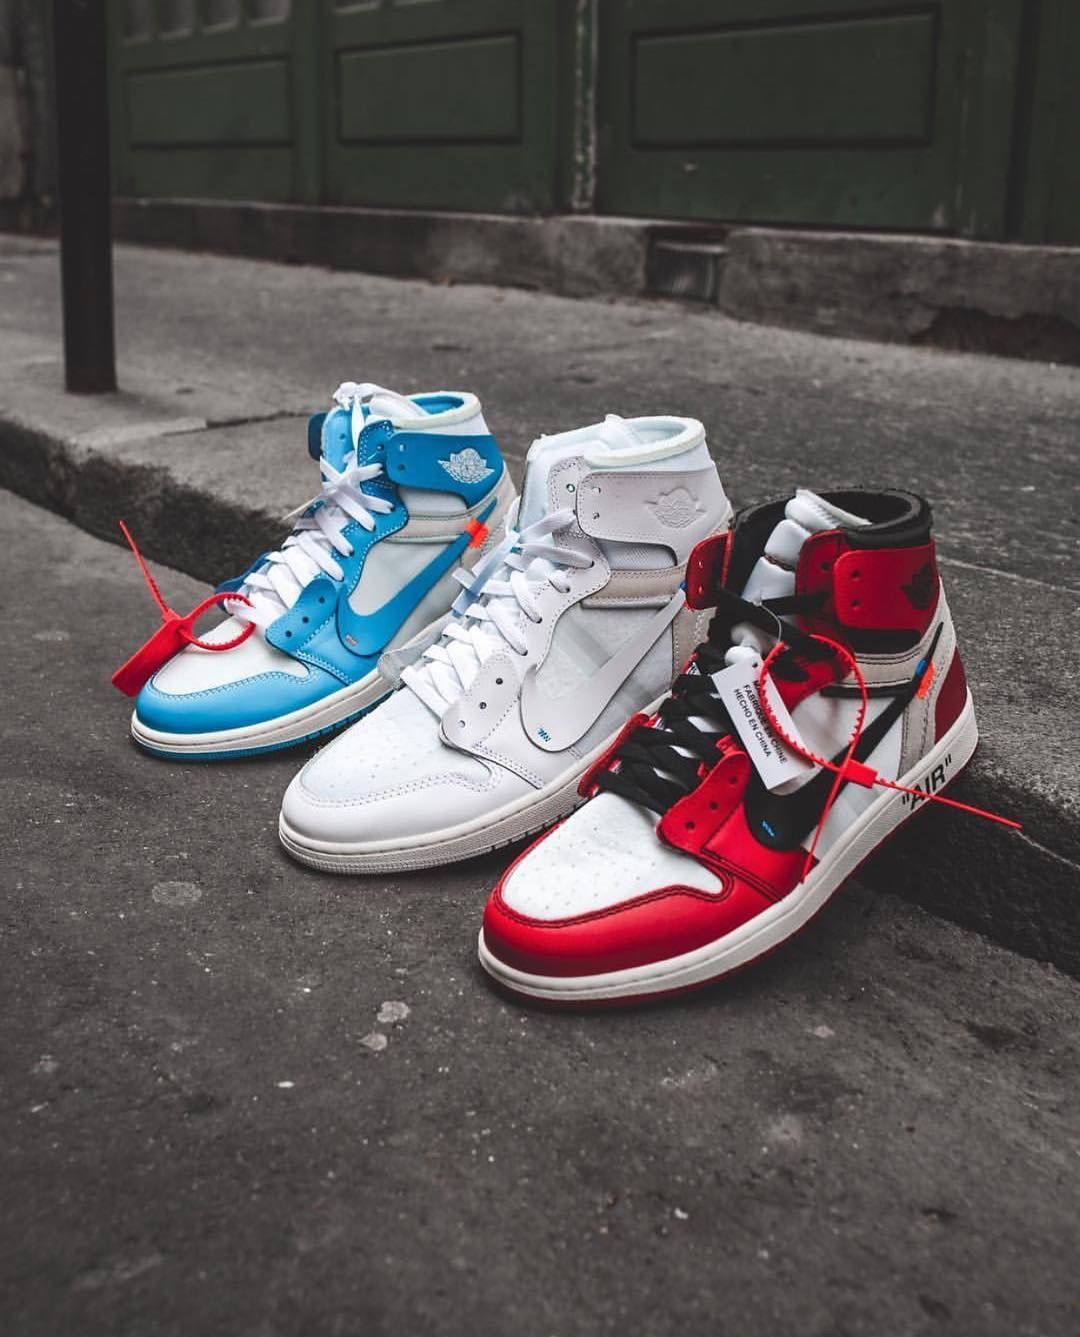 e17358a5f Pin by Tony P on Off-White in 2019 | Sneakers, Hype shoes, Kicks shoes